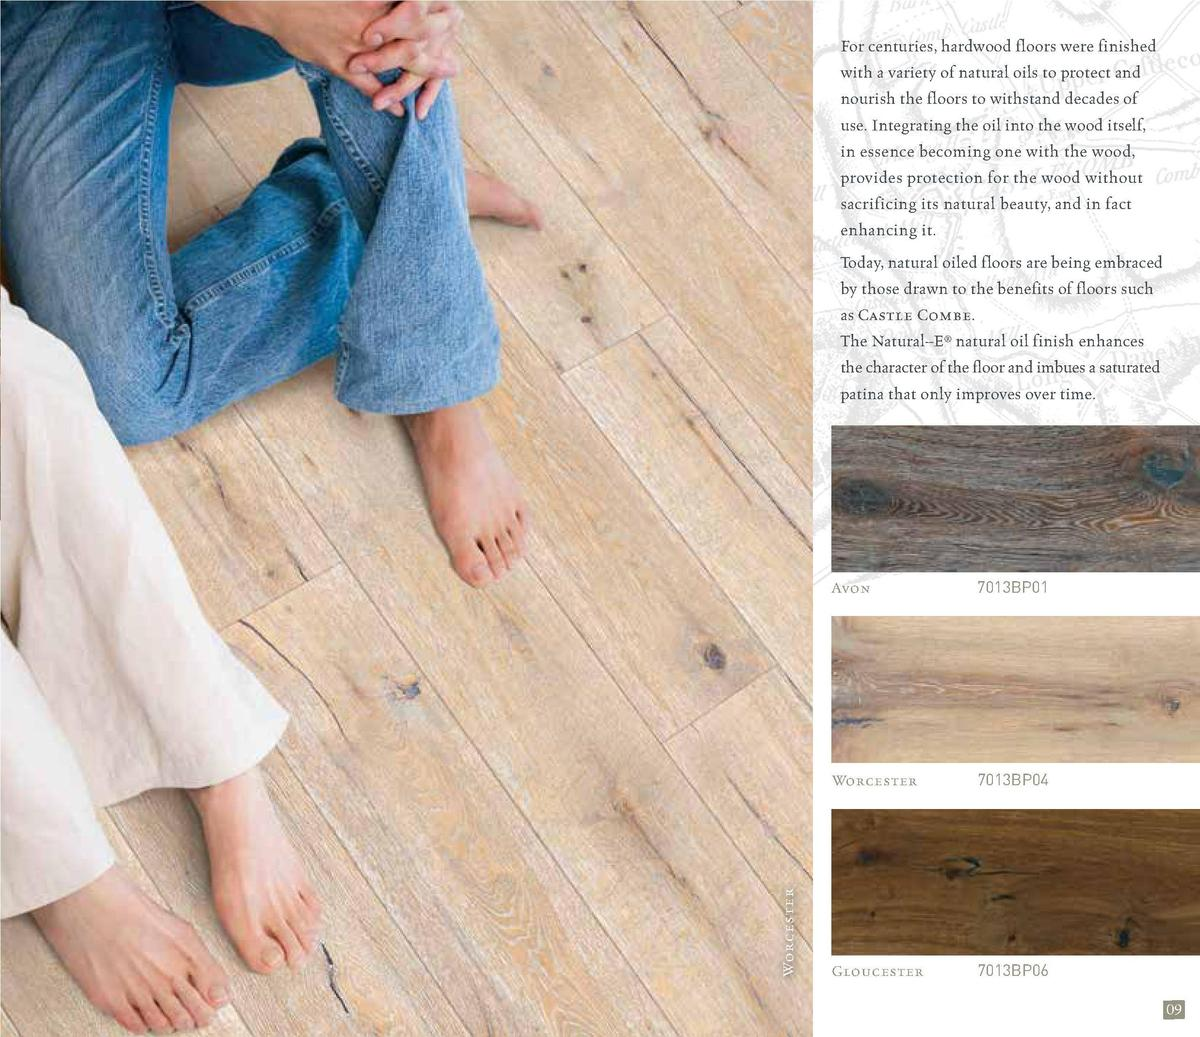 For centuries, hardwood floors were finished with a variety of natural oils to protect and nourish the floors to withstand...